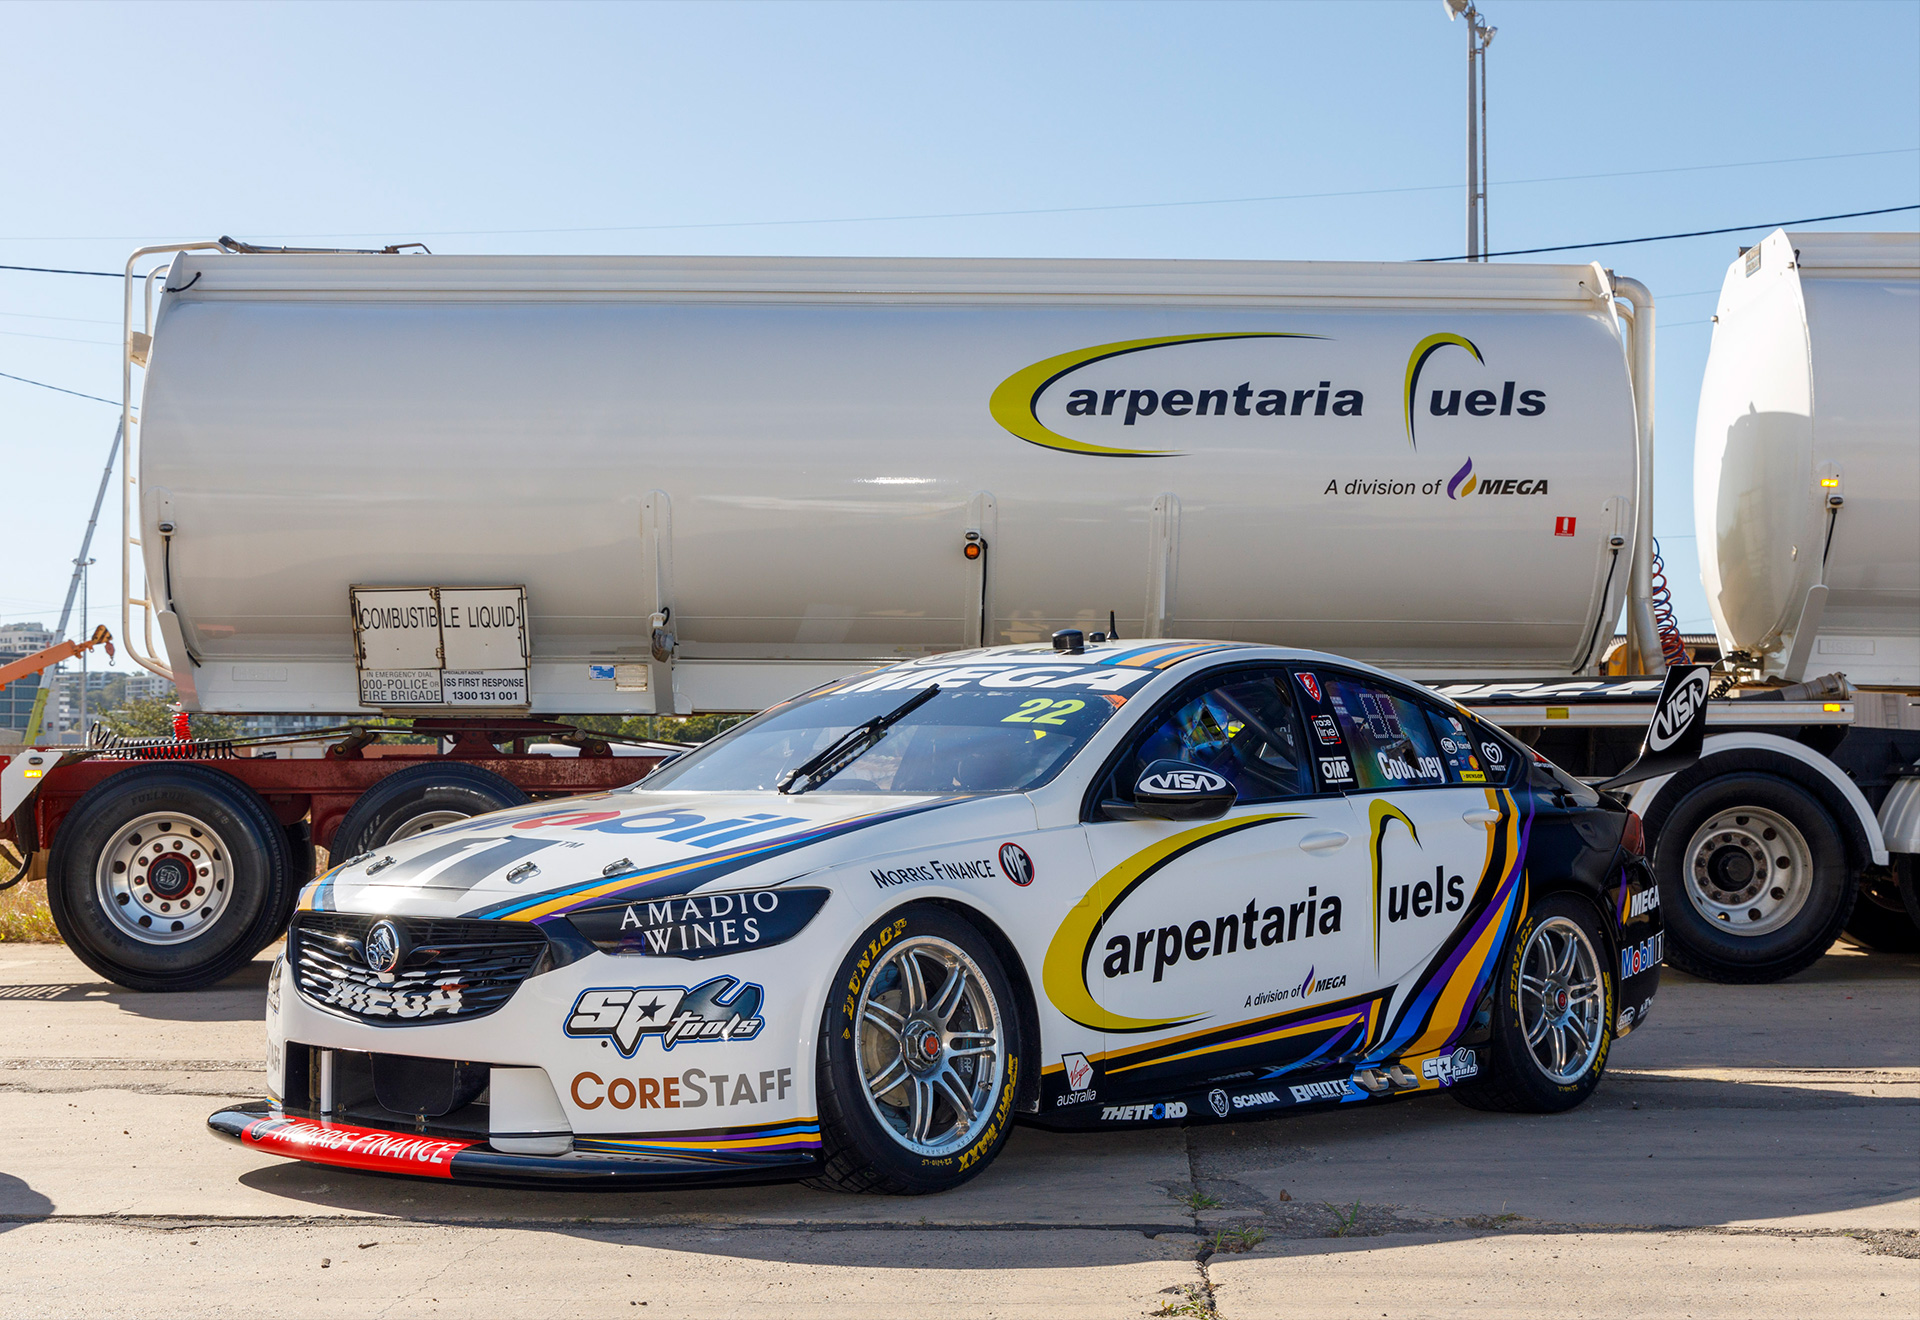 Carpentaria Fuels to take over the major branding position on James Courtney's Car 22.